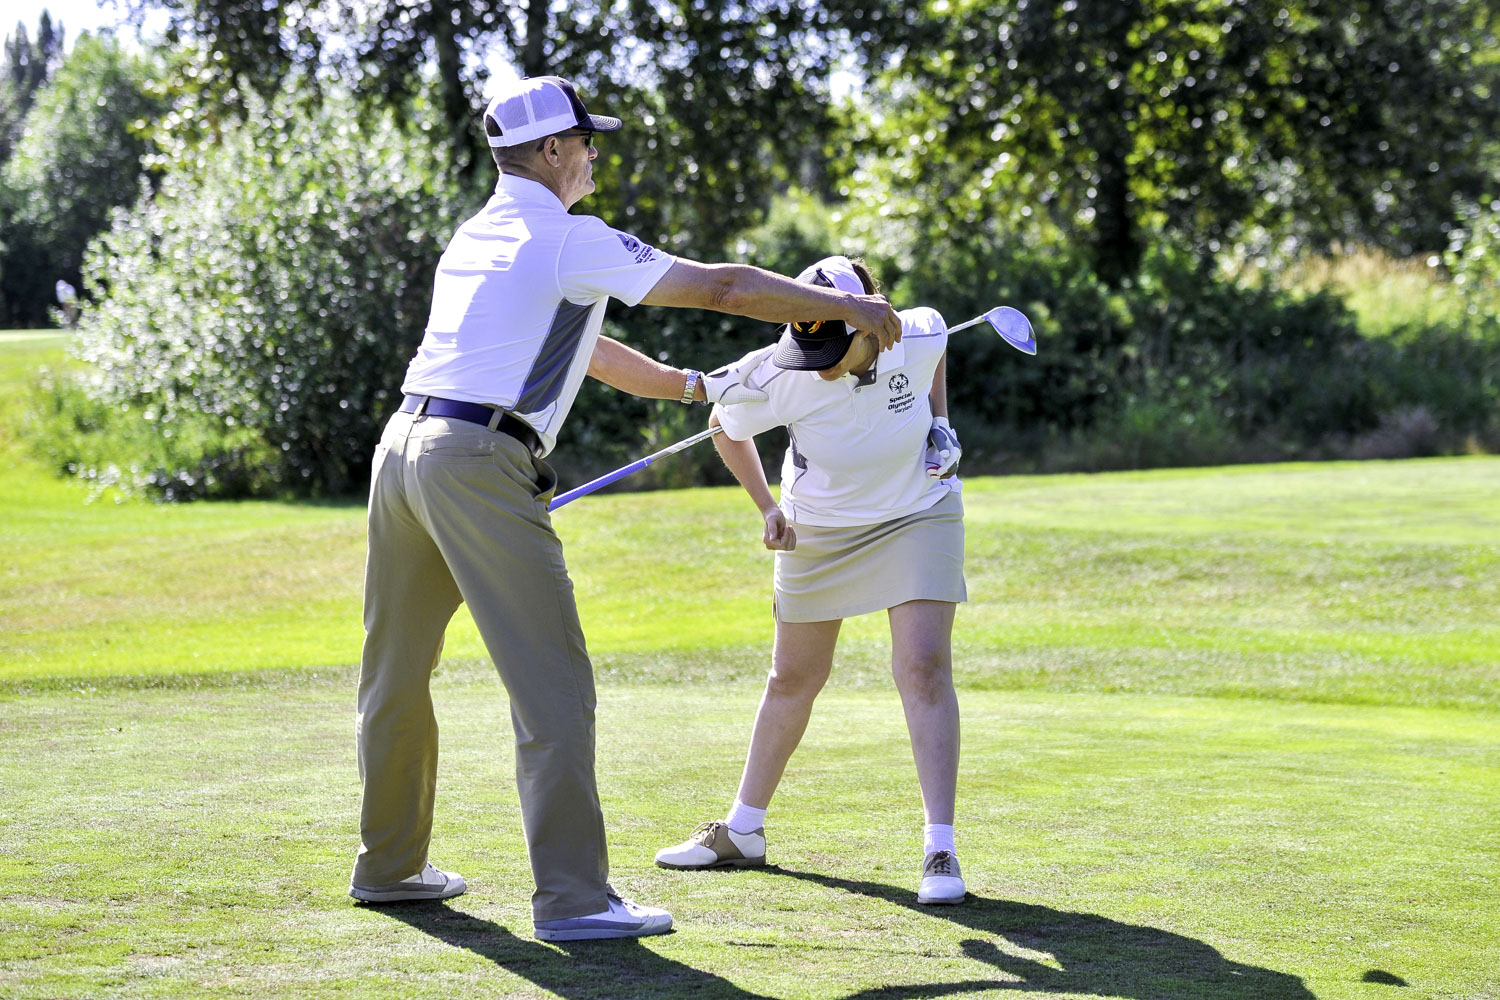 Golf coach helps his athlete stretch and relax at the tee box before her first shot at the Willows Run Golf Club in Redmond, Washington.